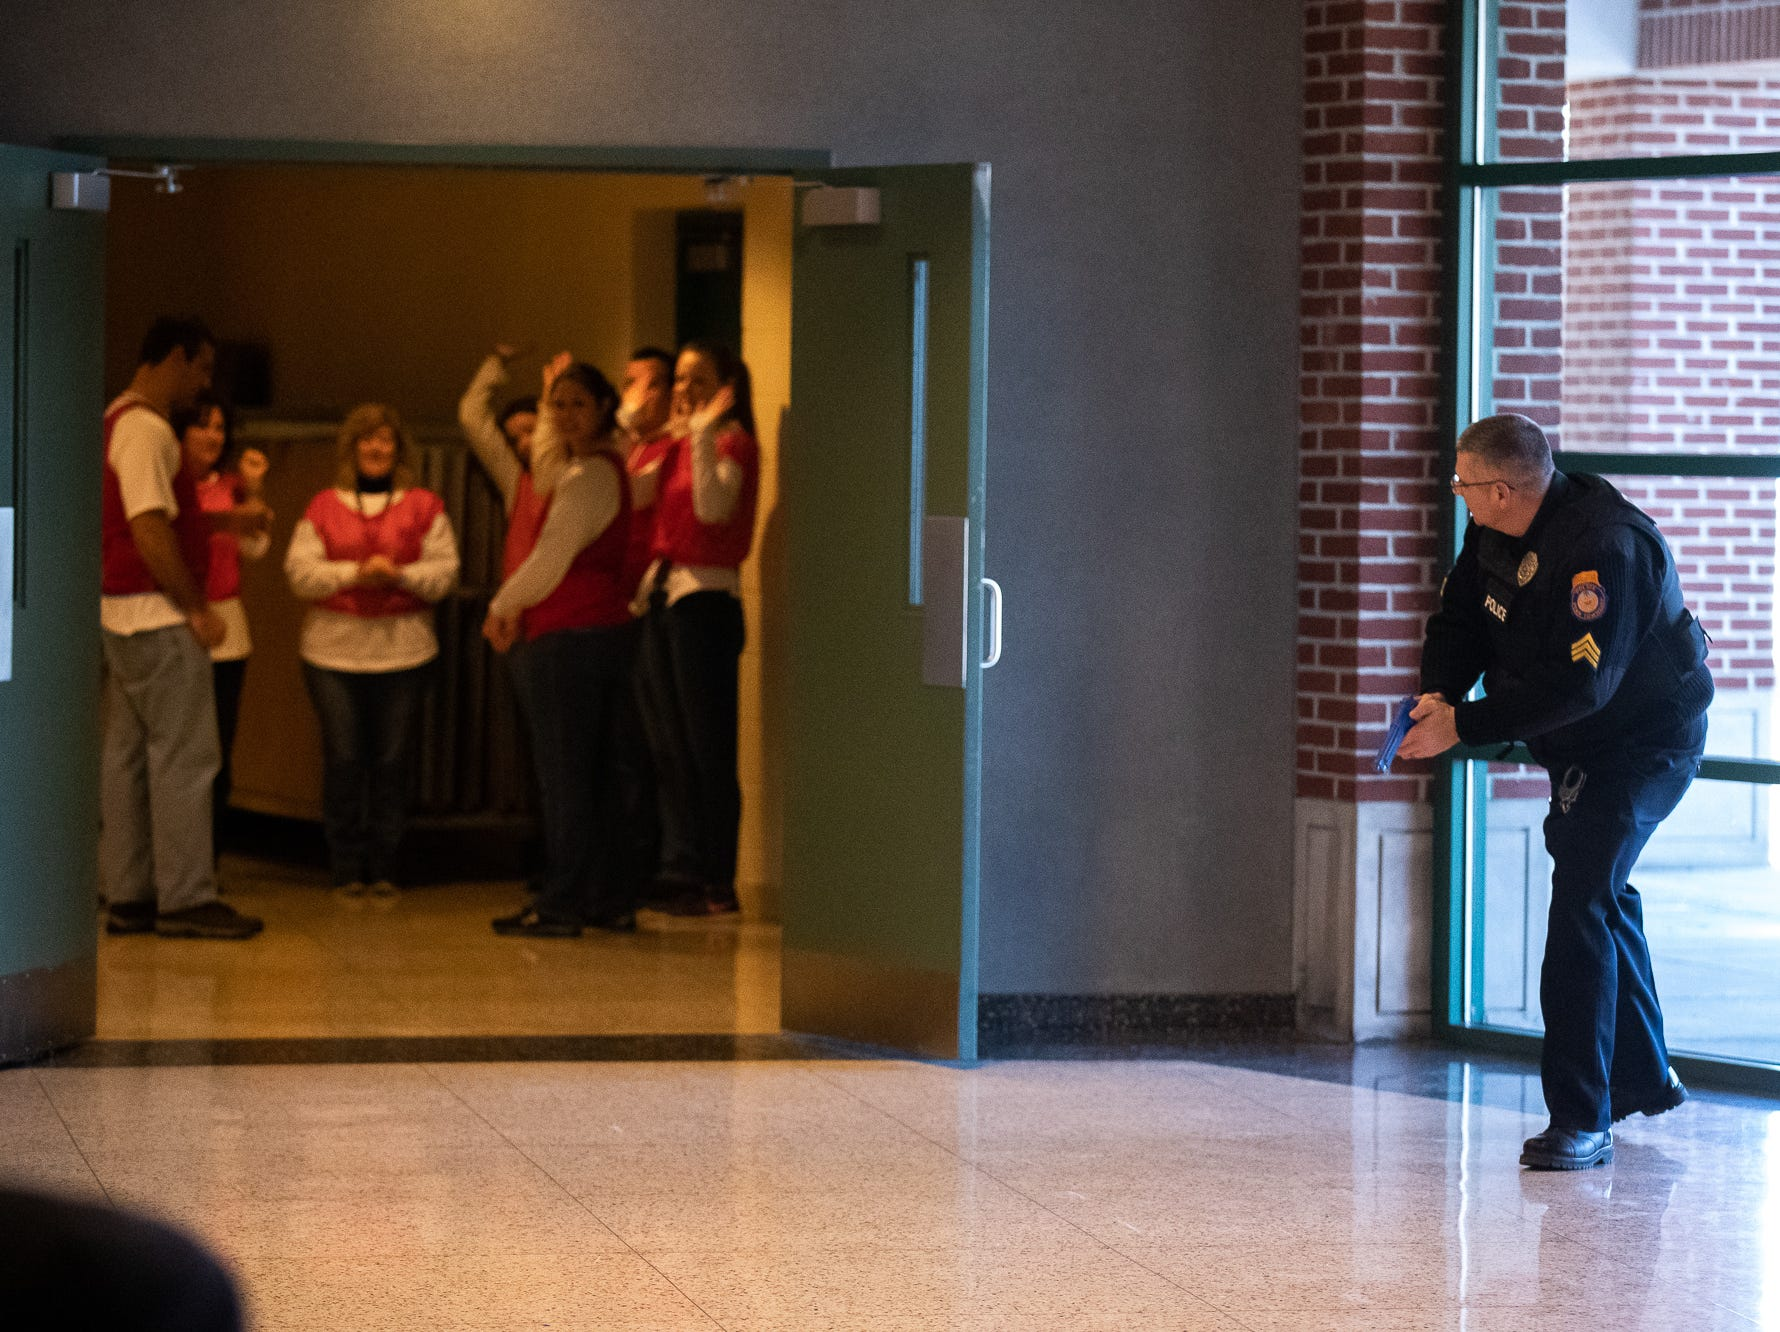 A Penn Township police officer makes contact with school staff during an active shooter drill at South Western High School, Monday, Jan. 21, 2019, in Penn Township. The drill simulated multiple scenarios involving an active shooter, allowing school security and local law enforcement agencies a hands-on opportunity to drill on engaging an active shooter while also giving school staff experience with how real world scenarios could unfold.